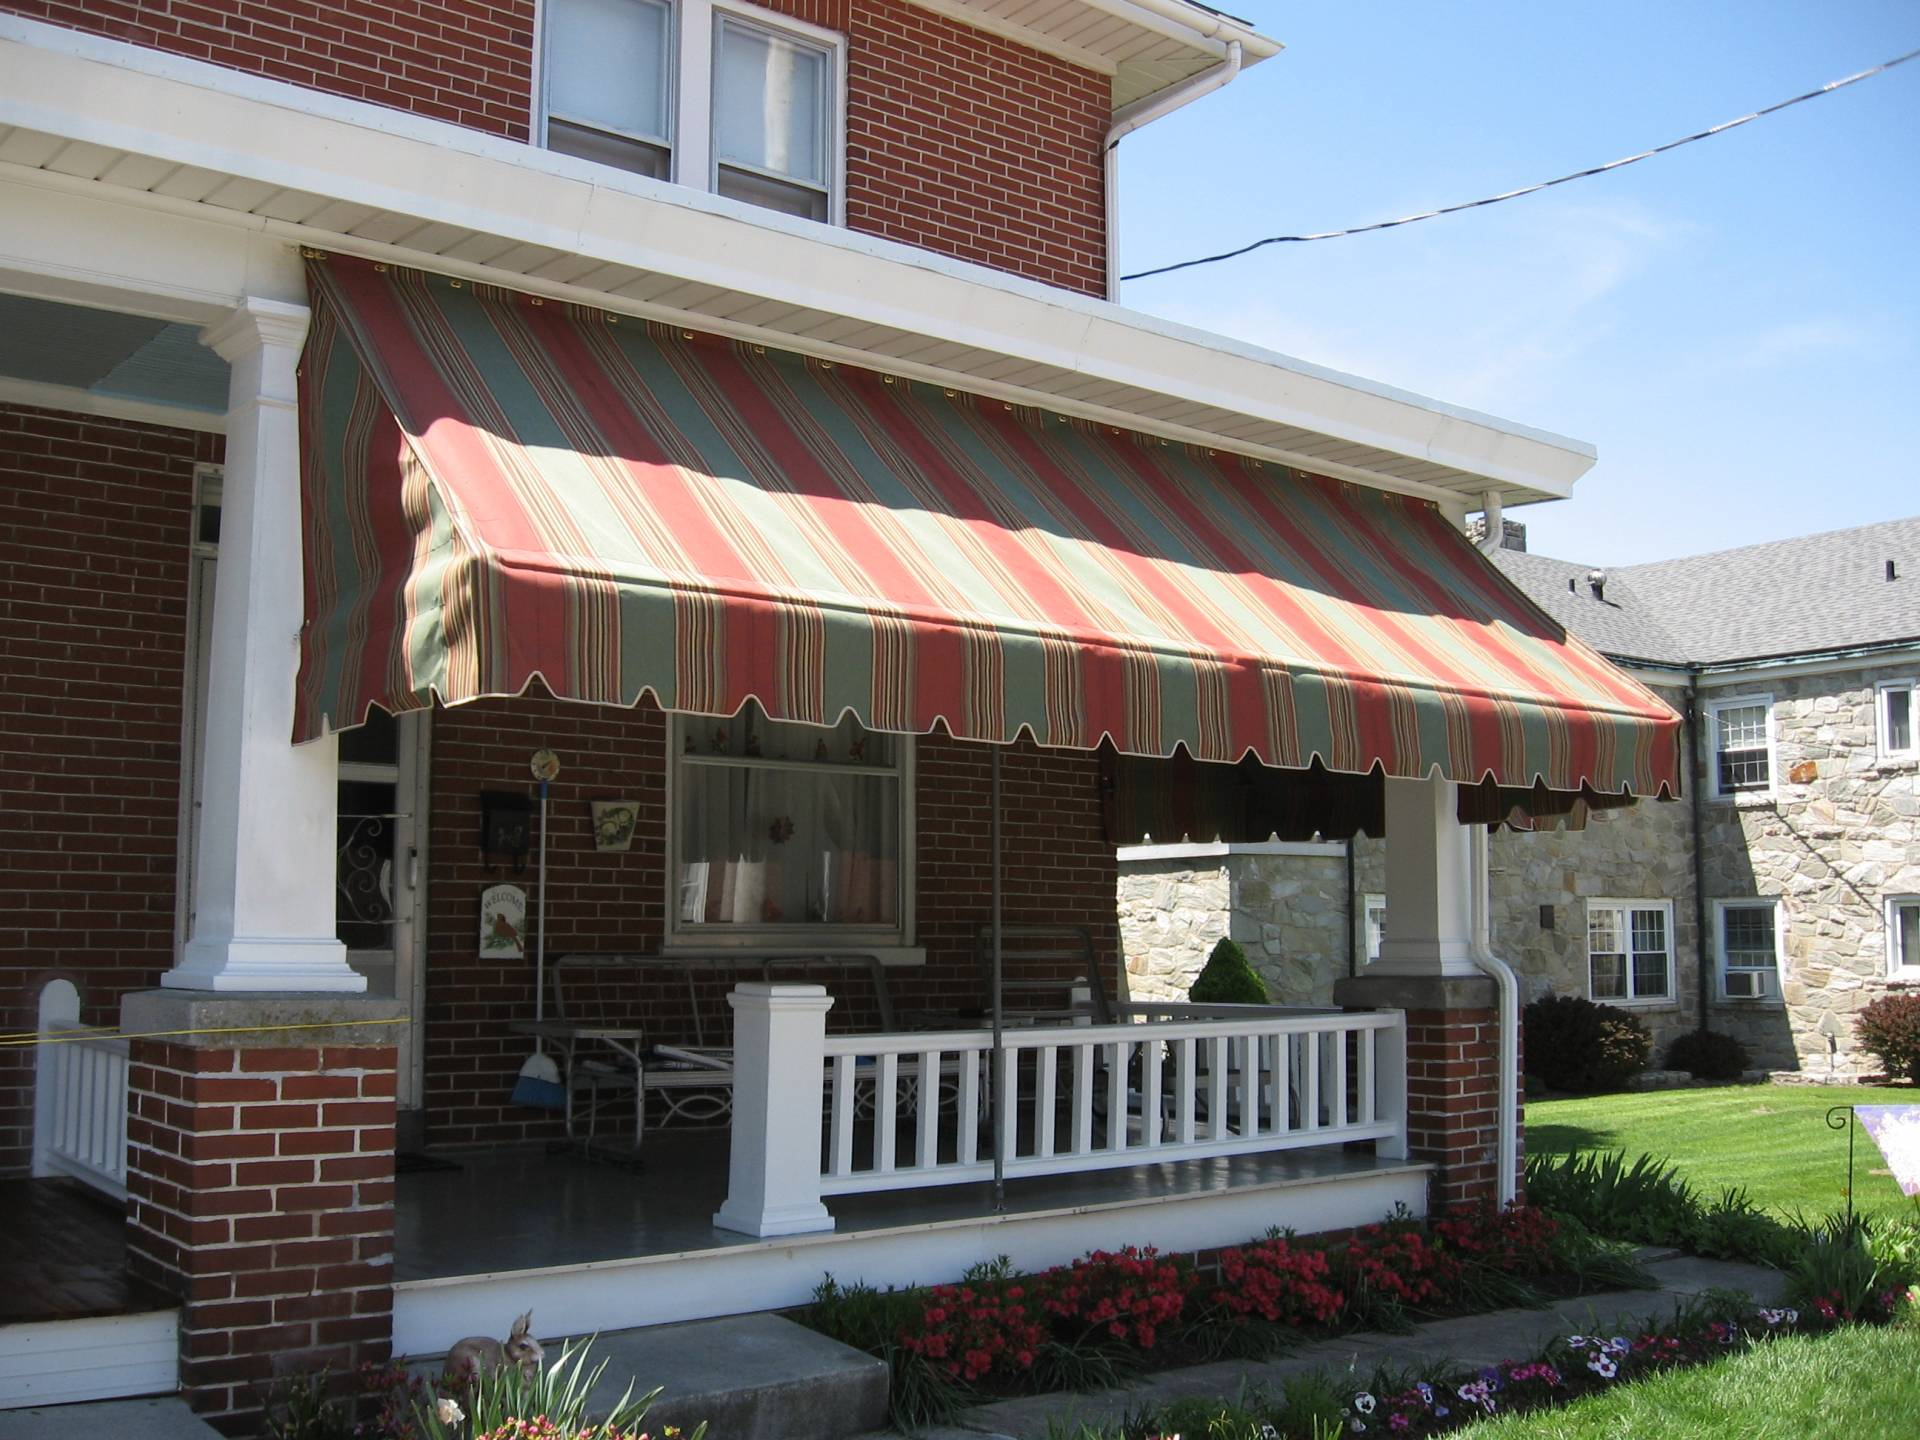 americal awning x best polycarbonate layered porches decor shoppe for porch aluminum covers patio cover multi awnings and